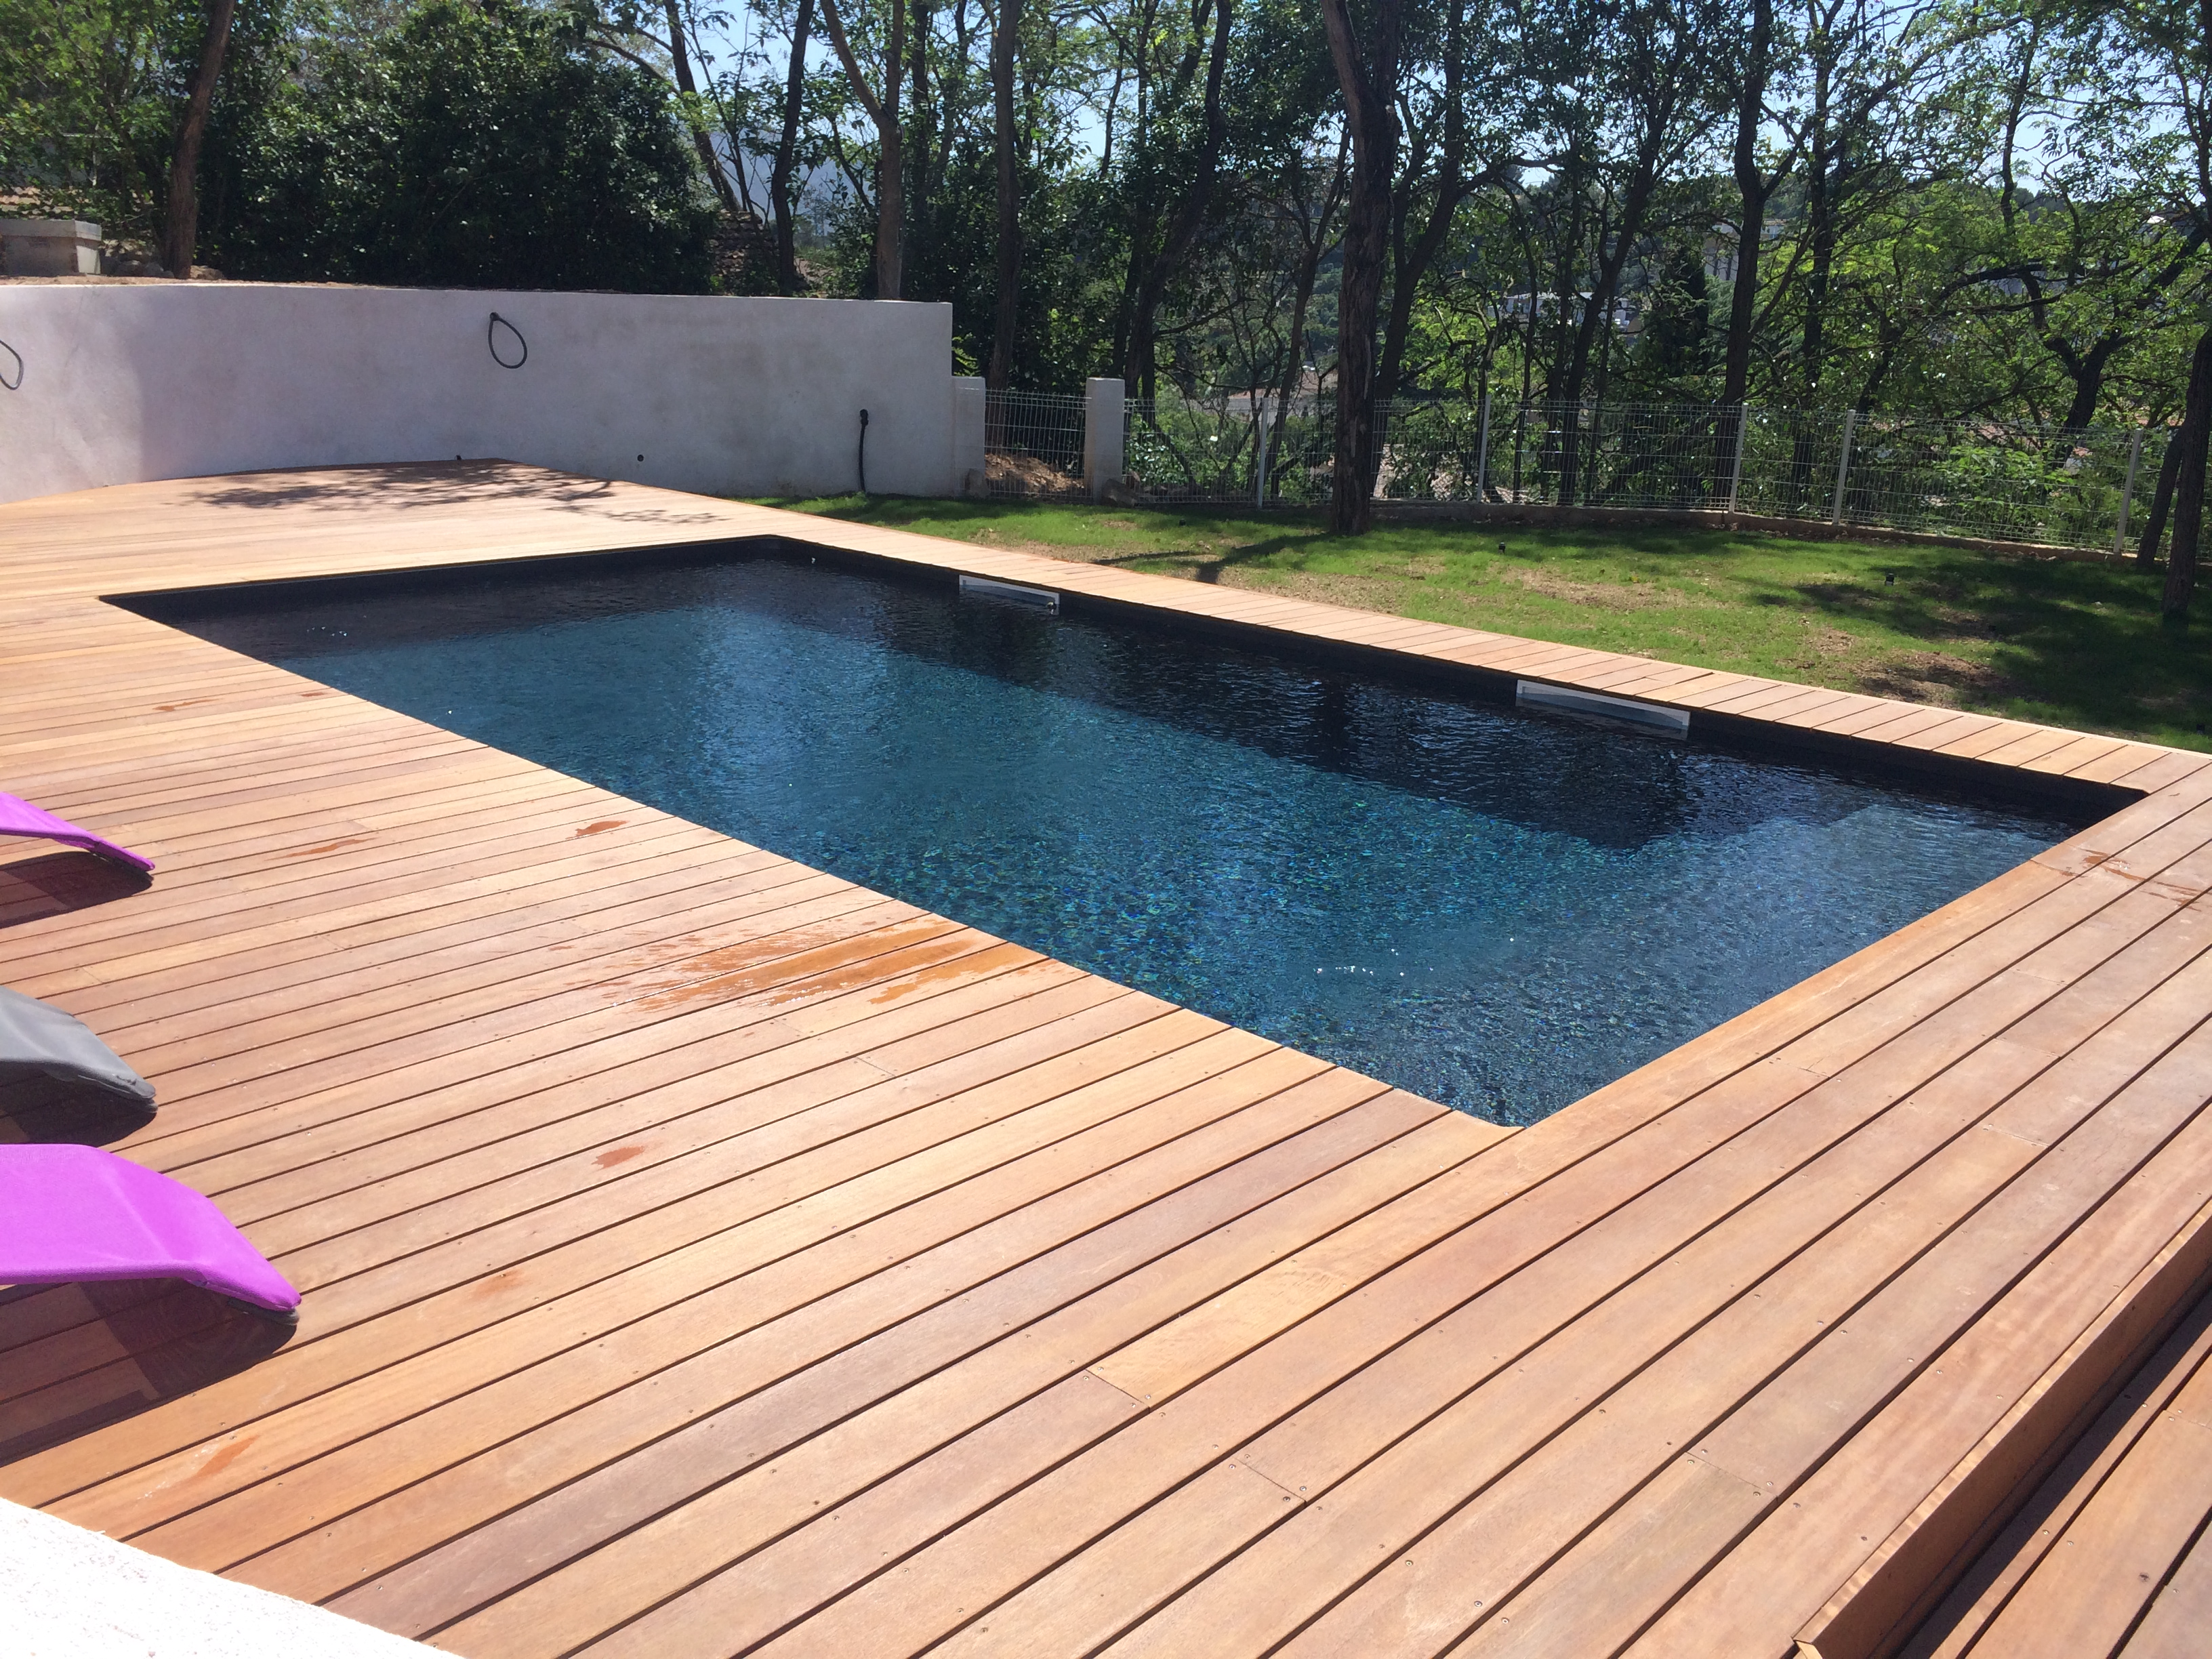 Constructeur de piscine en bois hy res for Piscine demontable bois